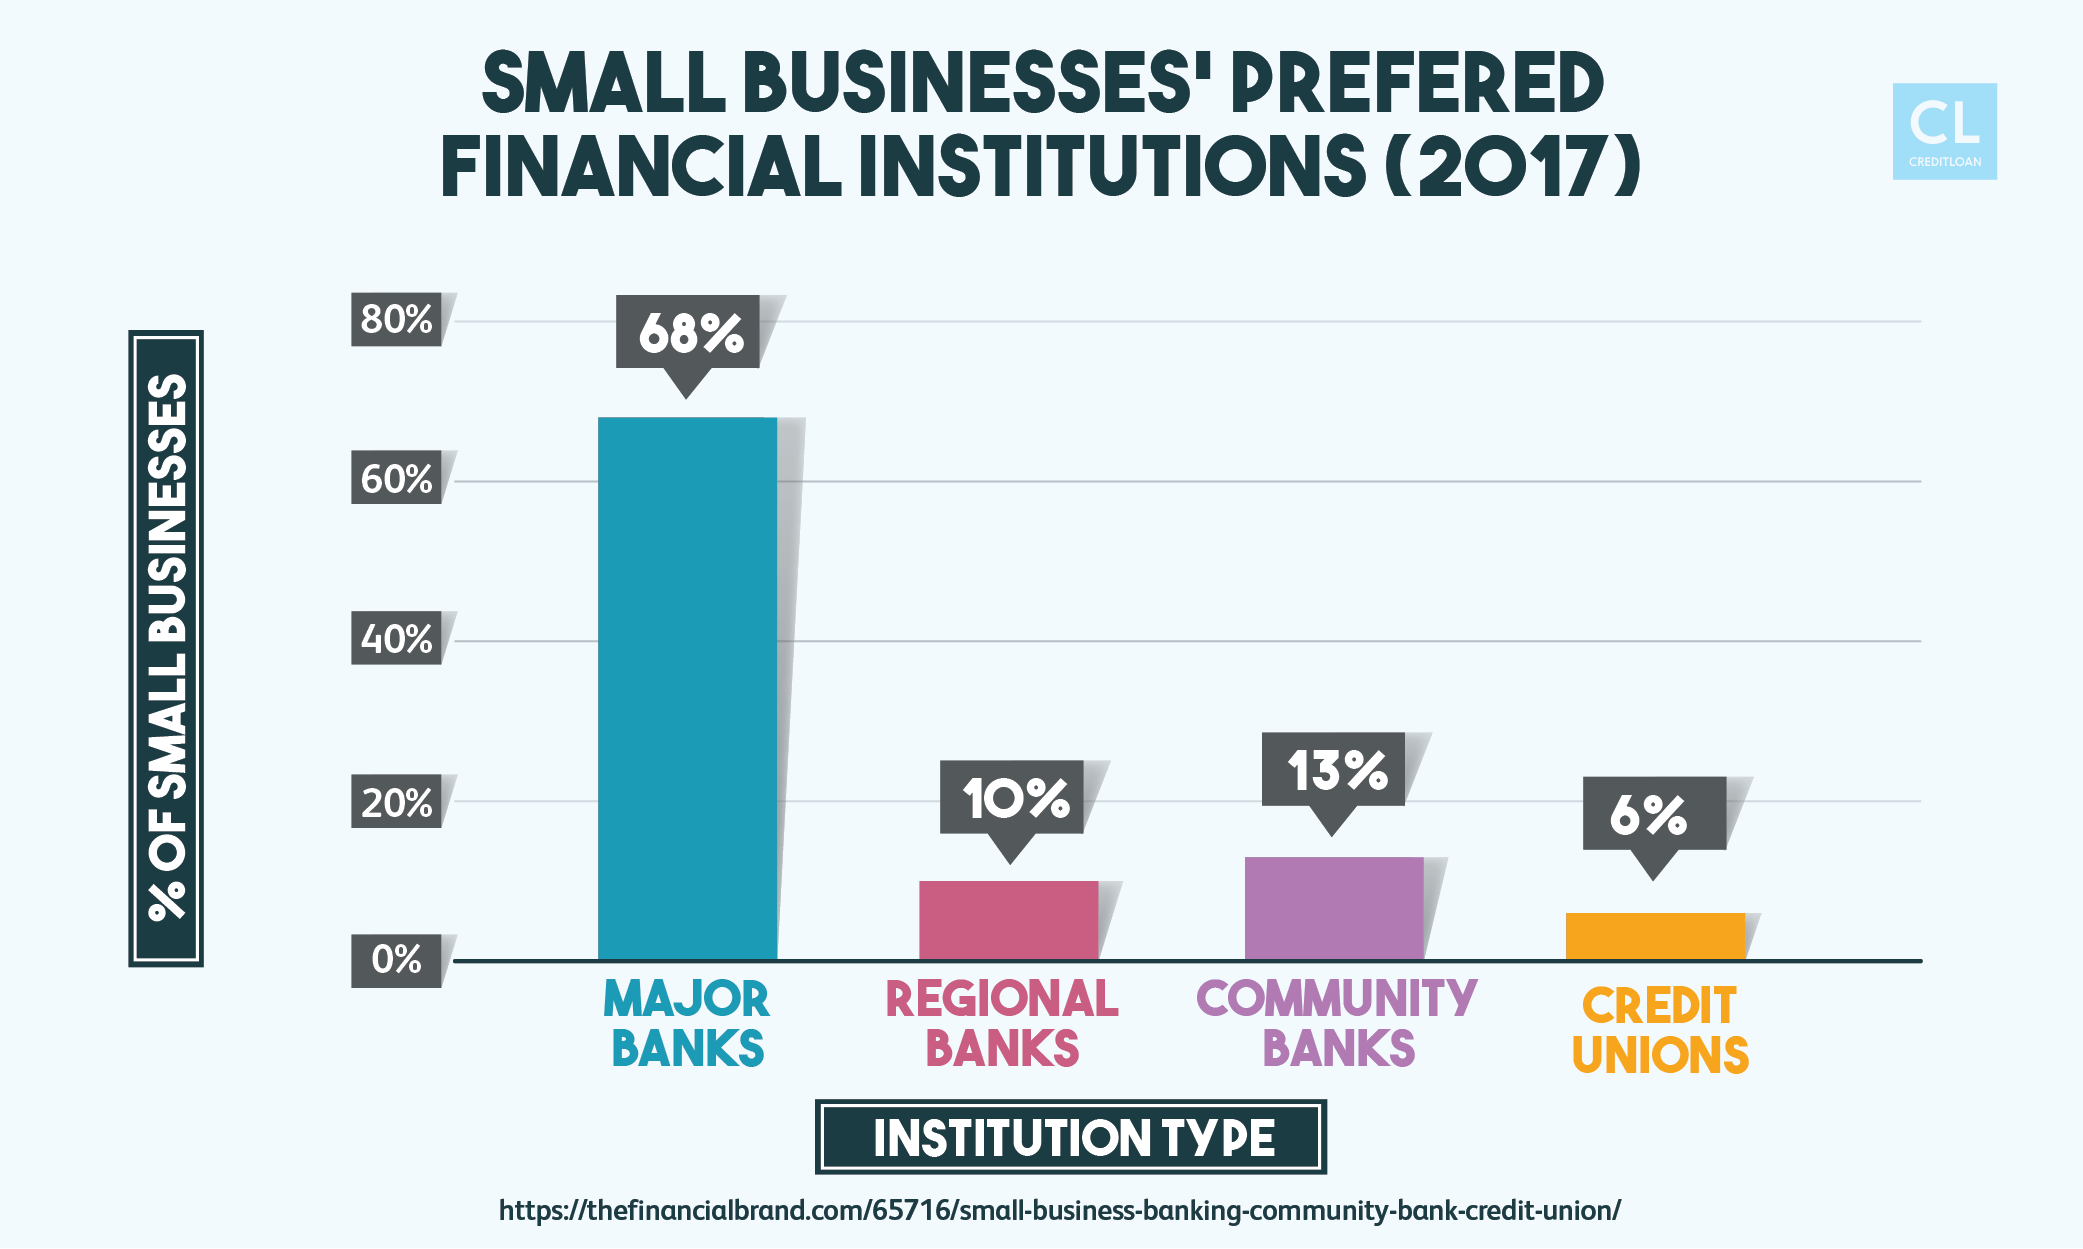 Small Businesses' Prefered Financial Institutions